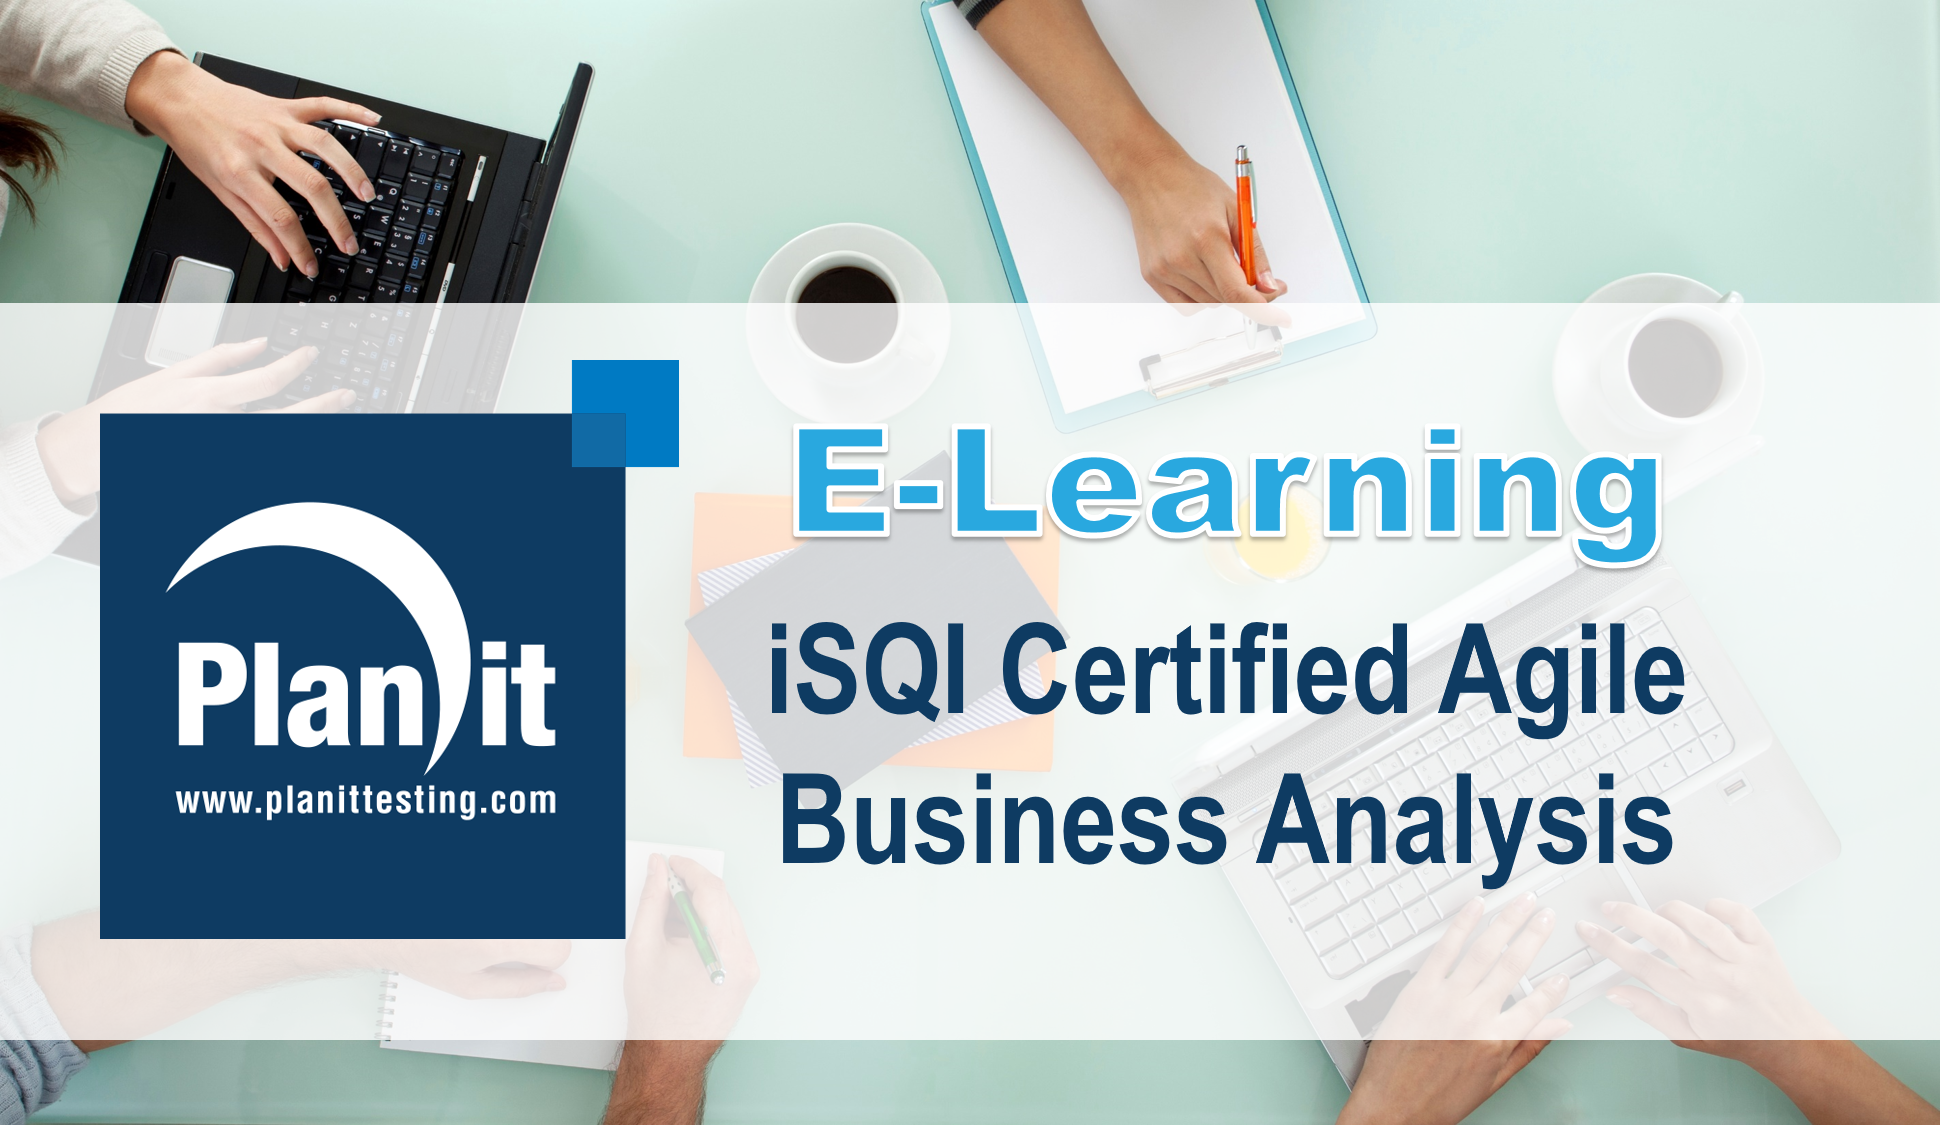 iSQI Certified Agile Business Analysis - Module 3 - Common Agile Approaches